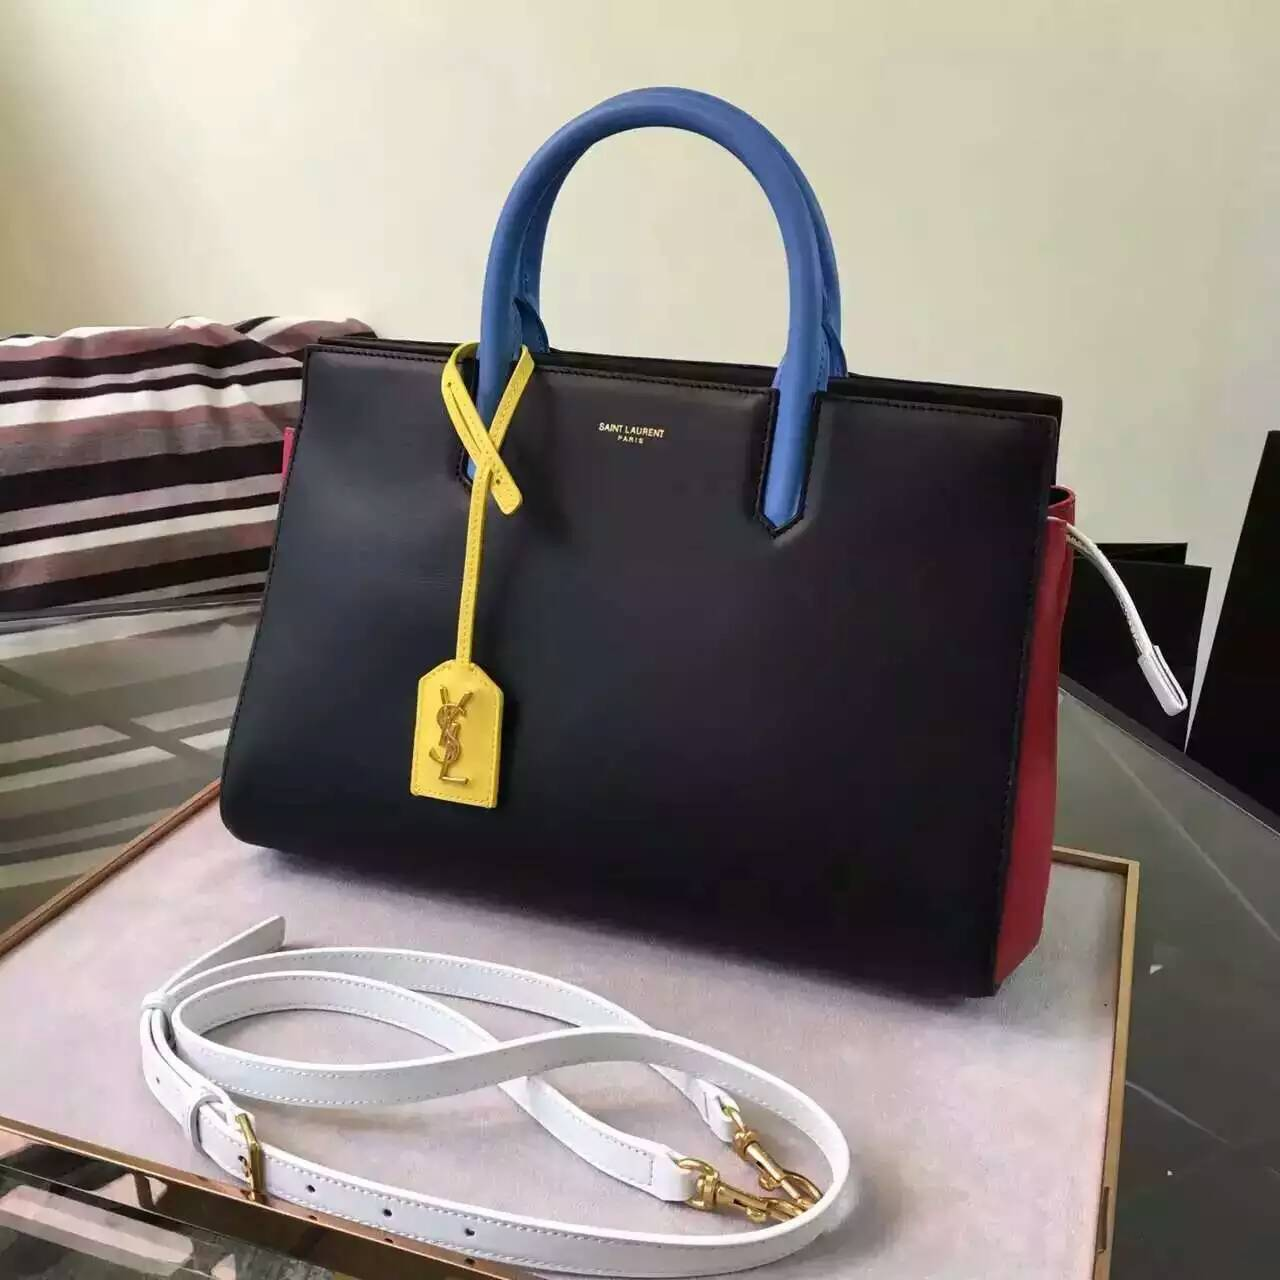 S/S 2016 New Saint Laurent Bag Cheap Sale-Saint Laurent Small Cabas Rive Gauche Bag in Black, Red, Dove White, Light Blue and Yellow Leather